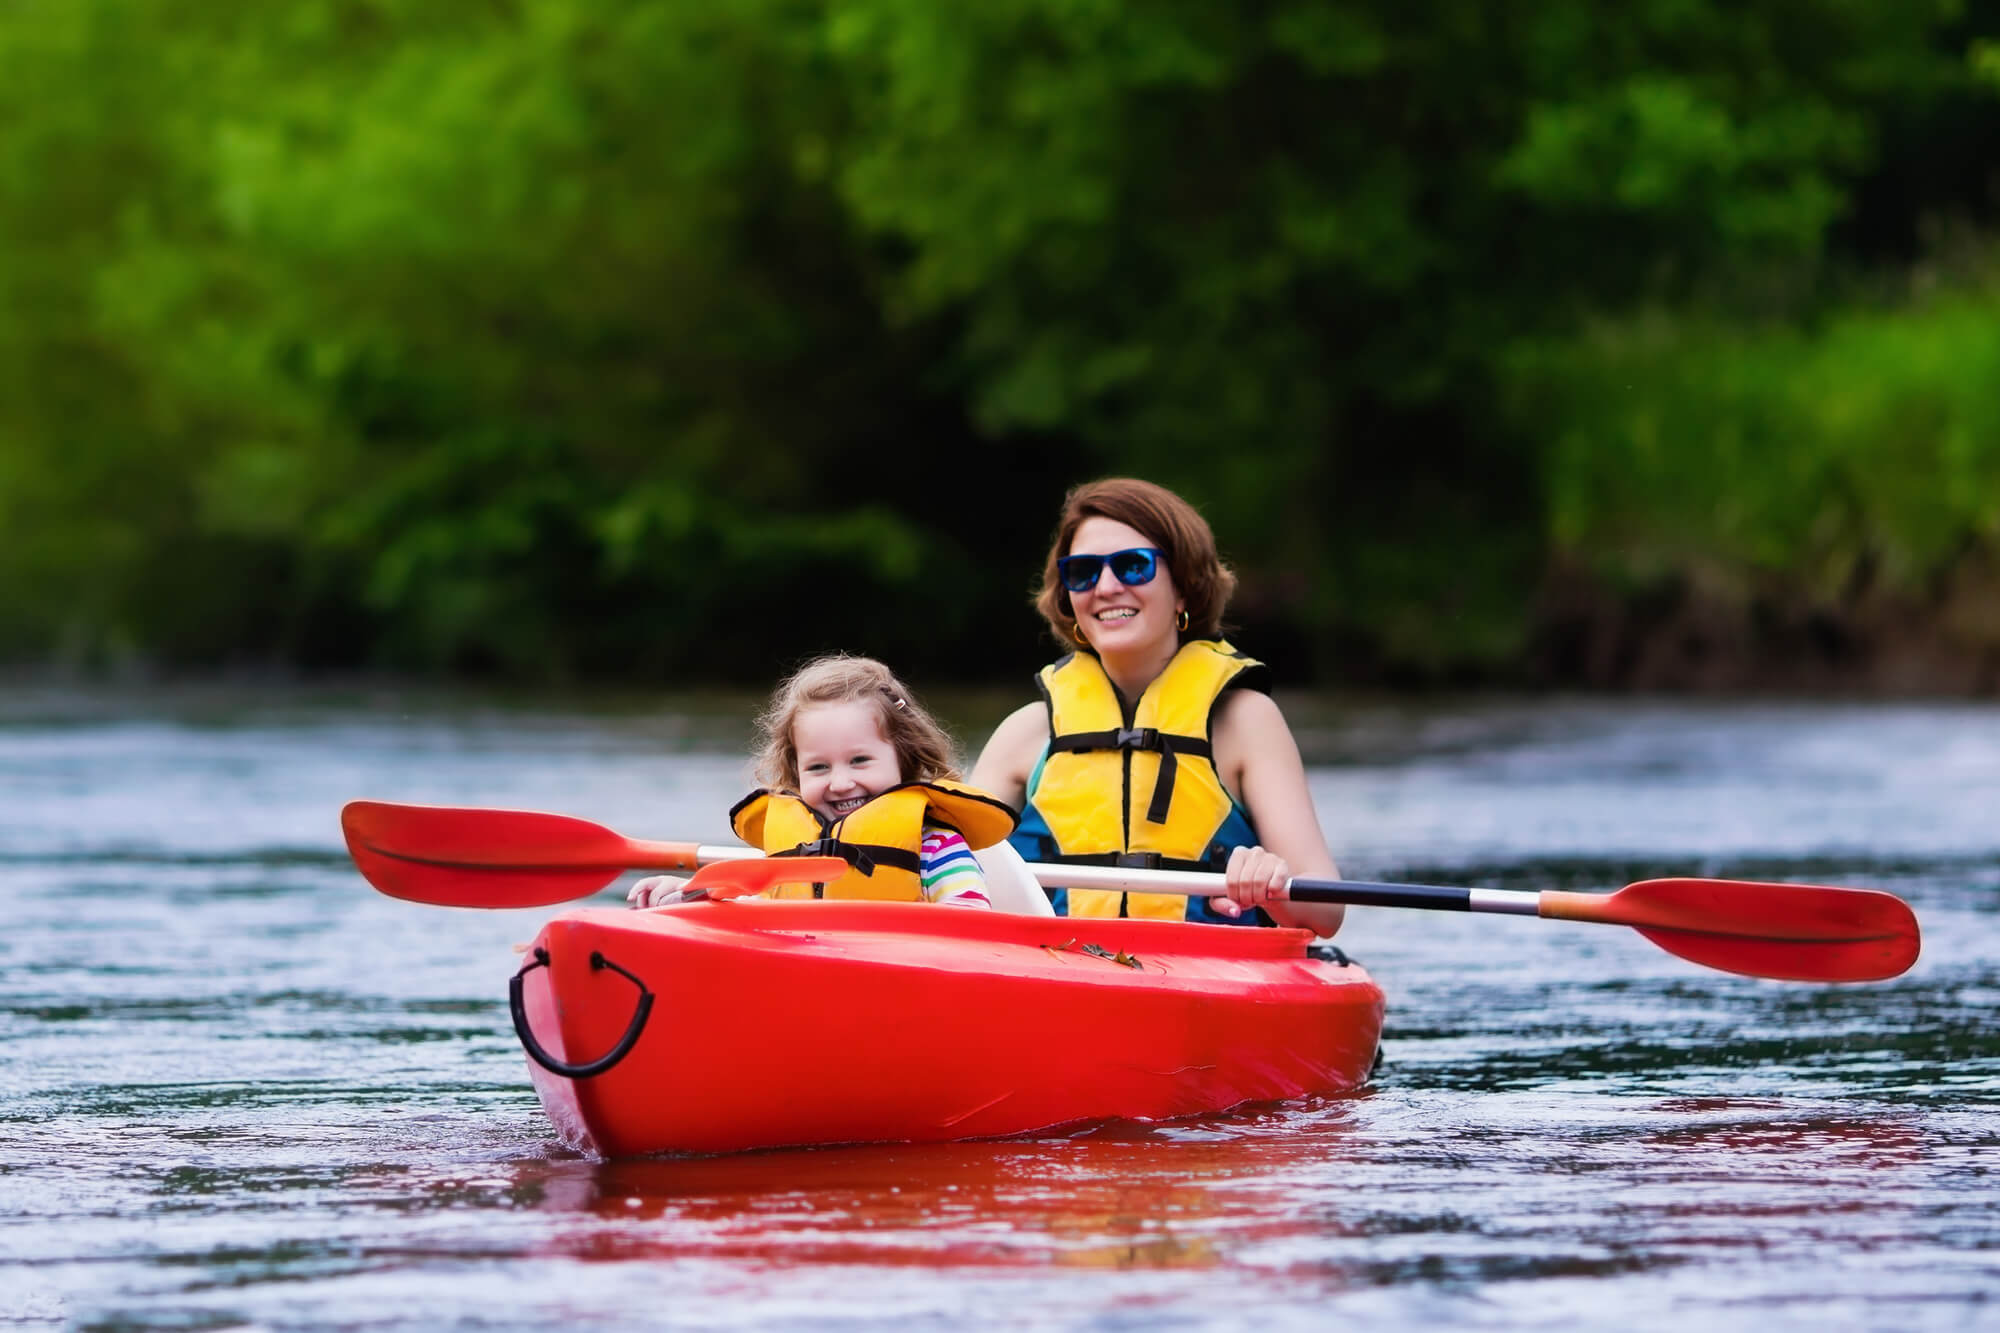 Beginners on kayak - woman and child